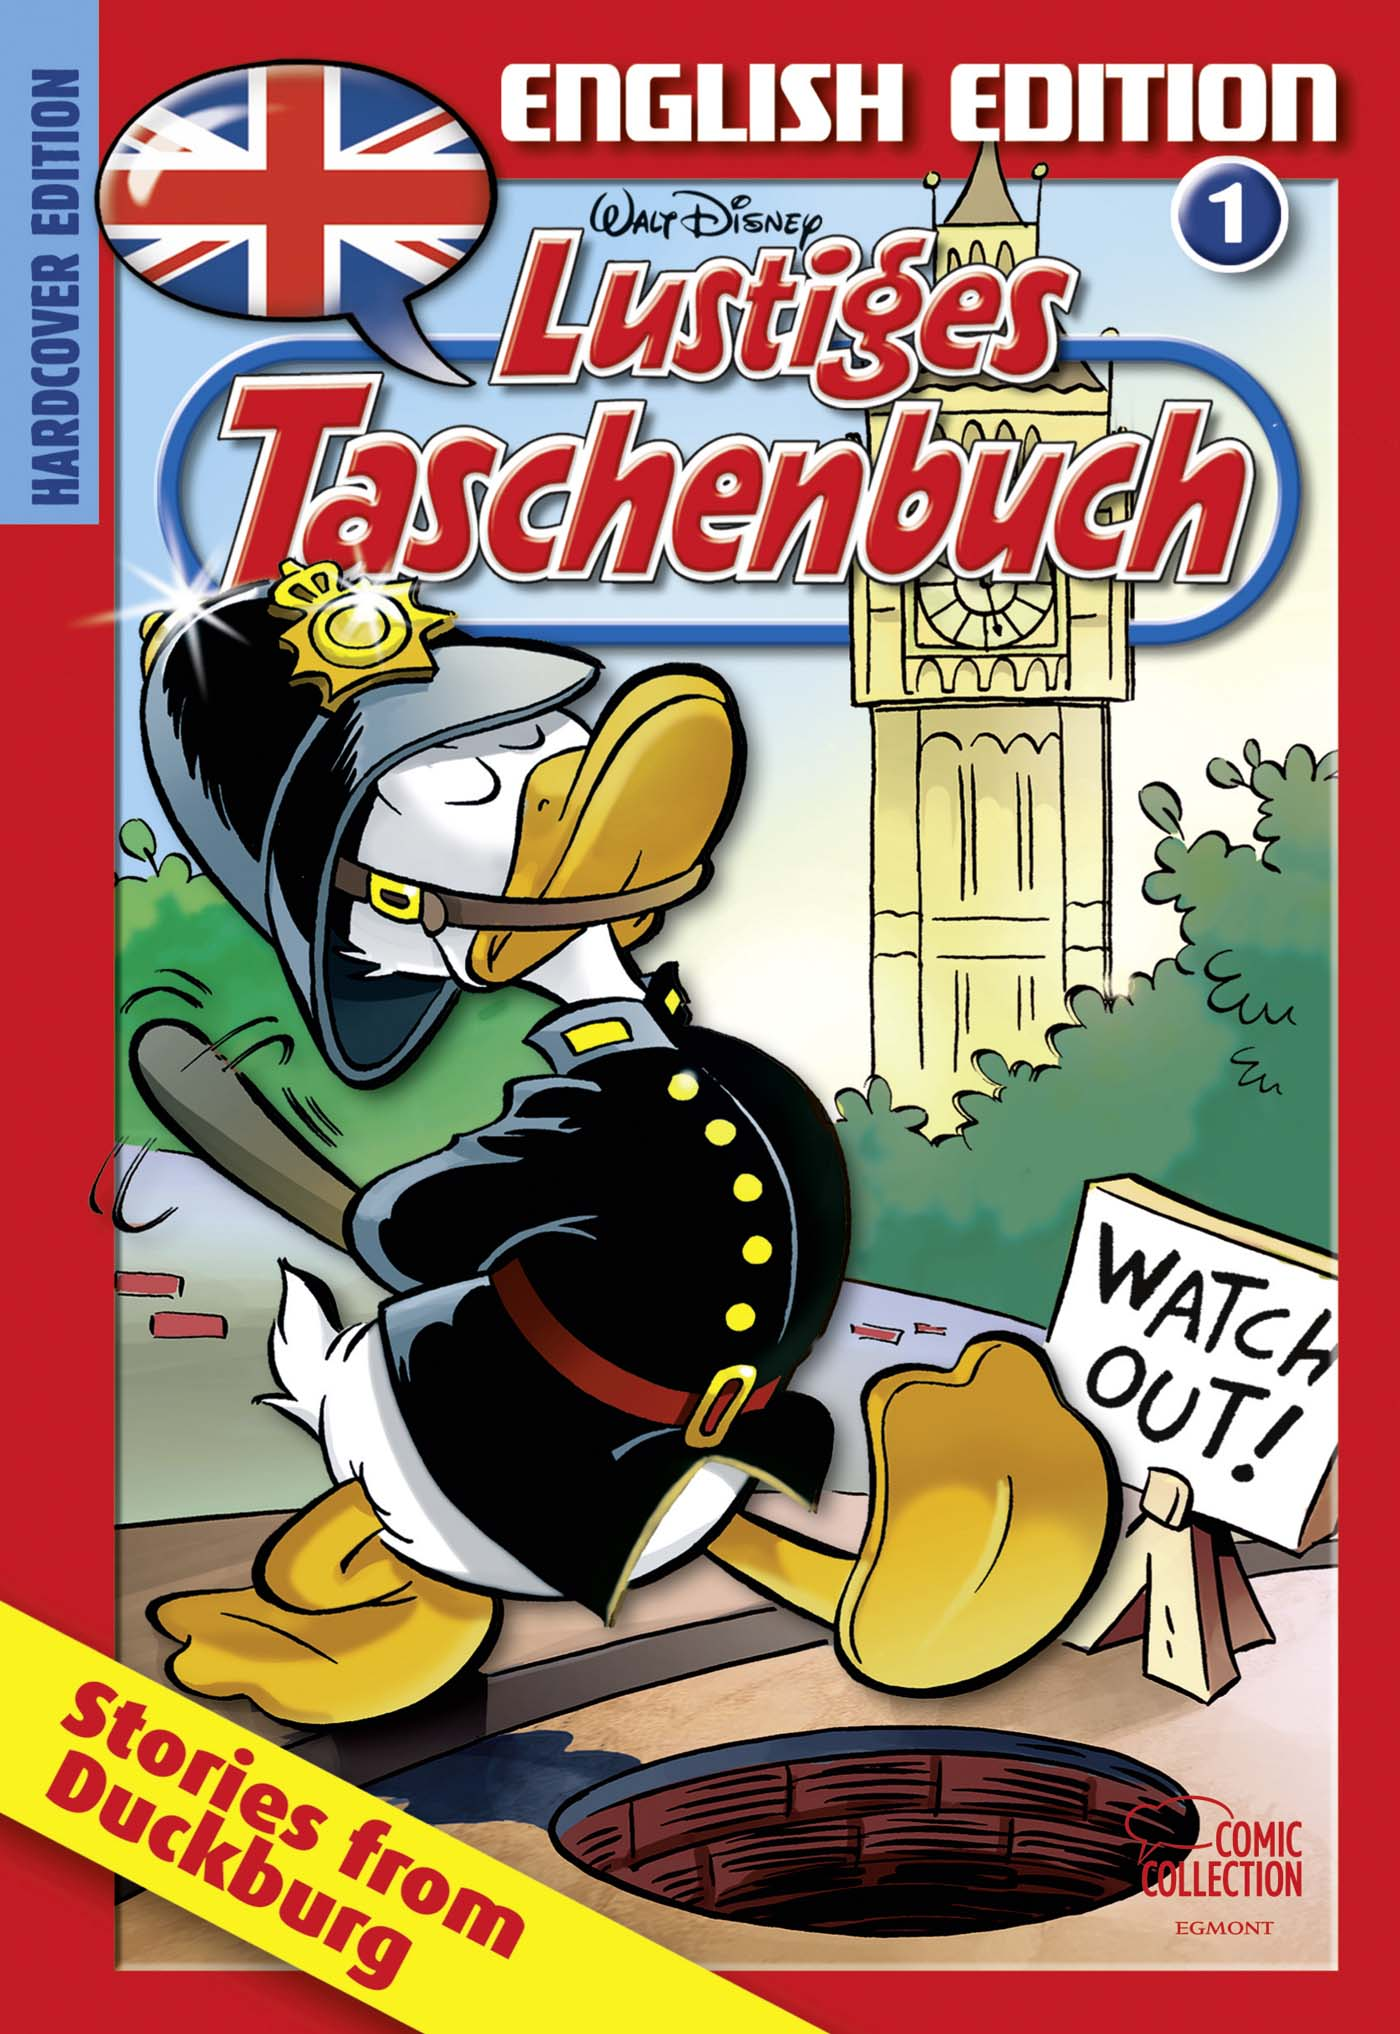 Lustiges Taschenbuch English Edition: Volume 1 - Stories from Duckburg [Hardcover Edition]